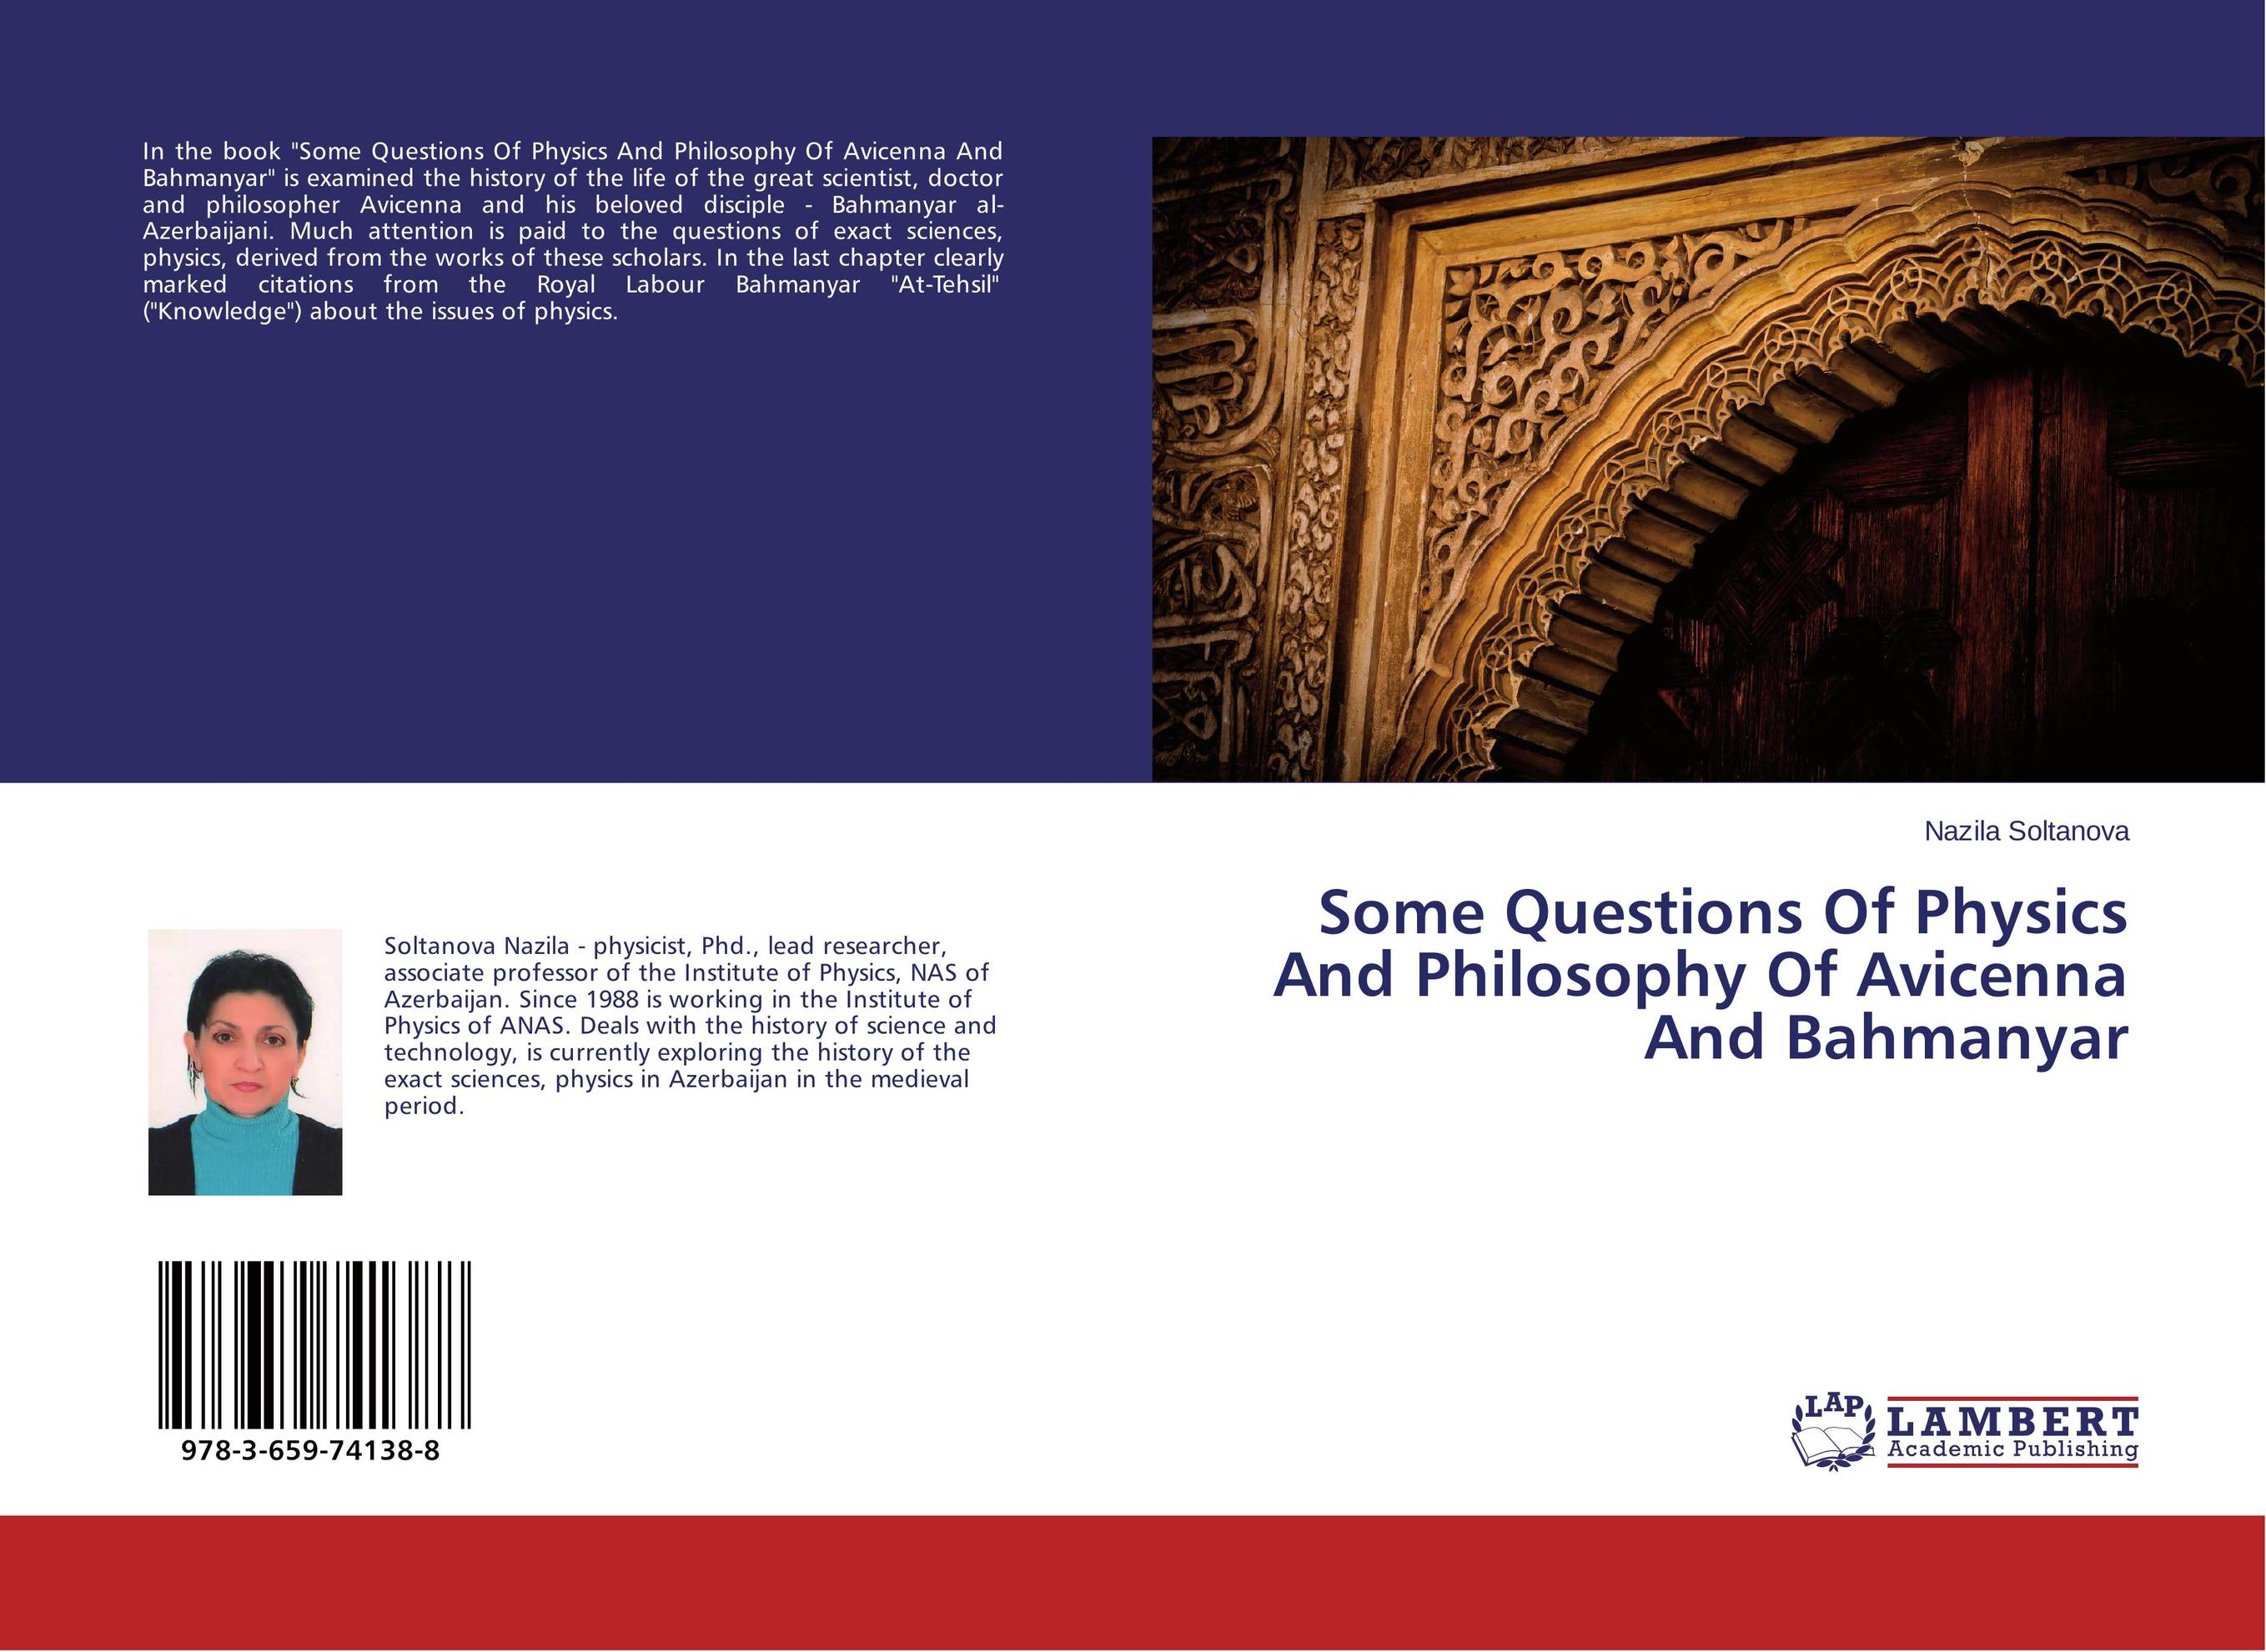 Some Questions Of Physics And Philosophy Of Avicenna And Bahmanyar companion encyclopedia of the history and philosophy of the mathematical sciences v 1